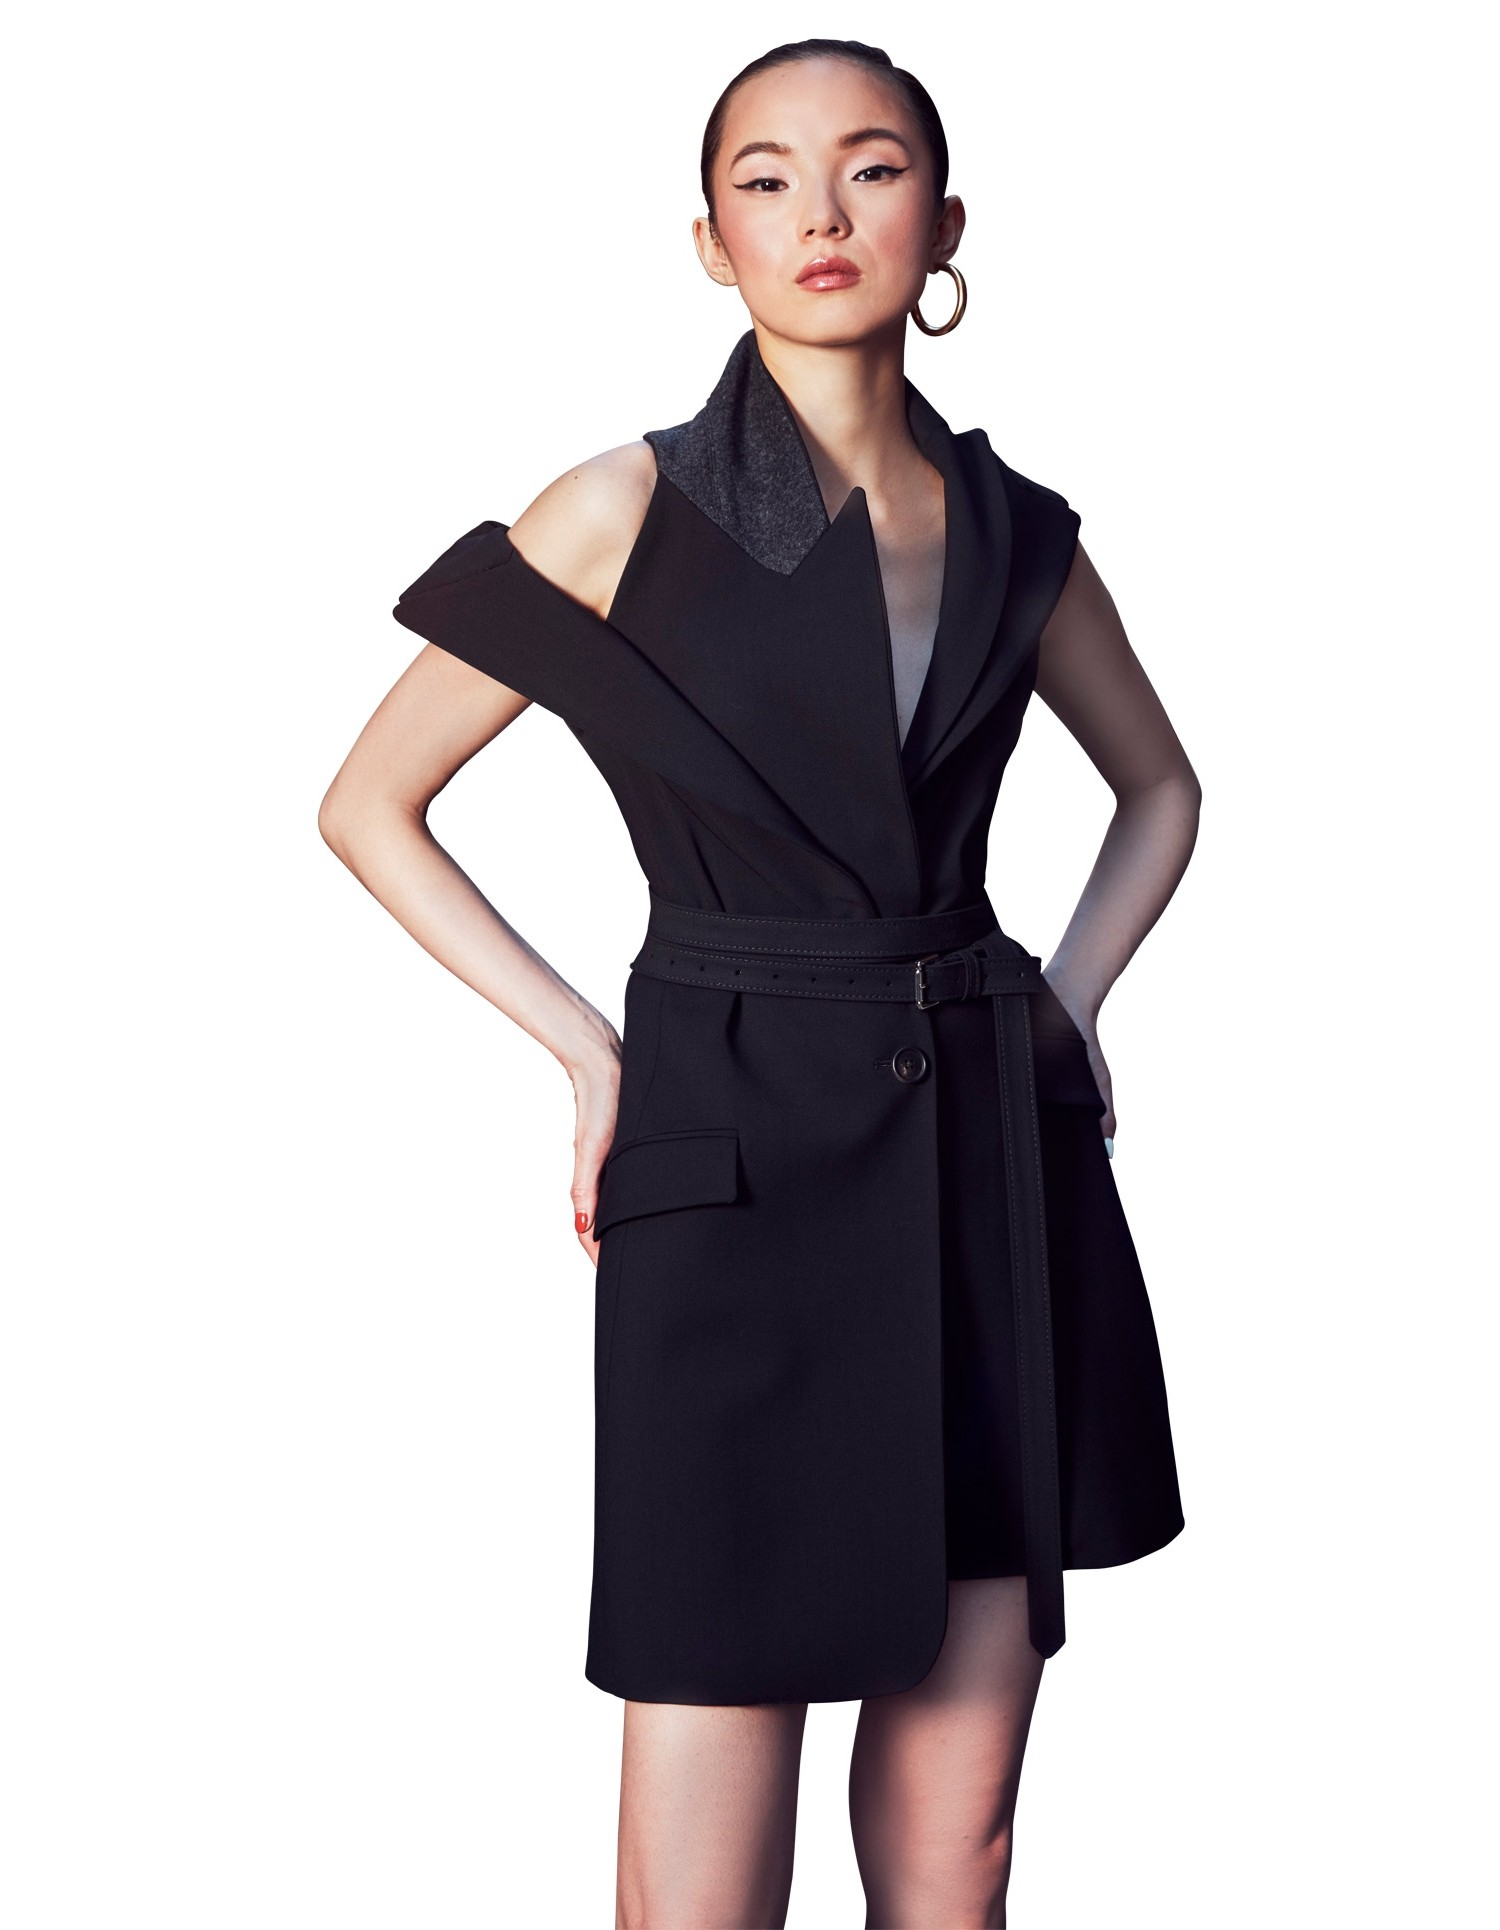 MONSE Double Lapel Jacket Dress in Black on Model Front Detail View